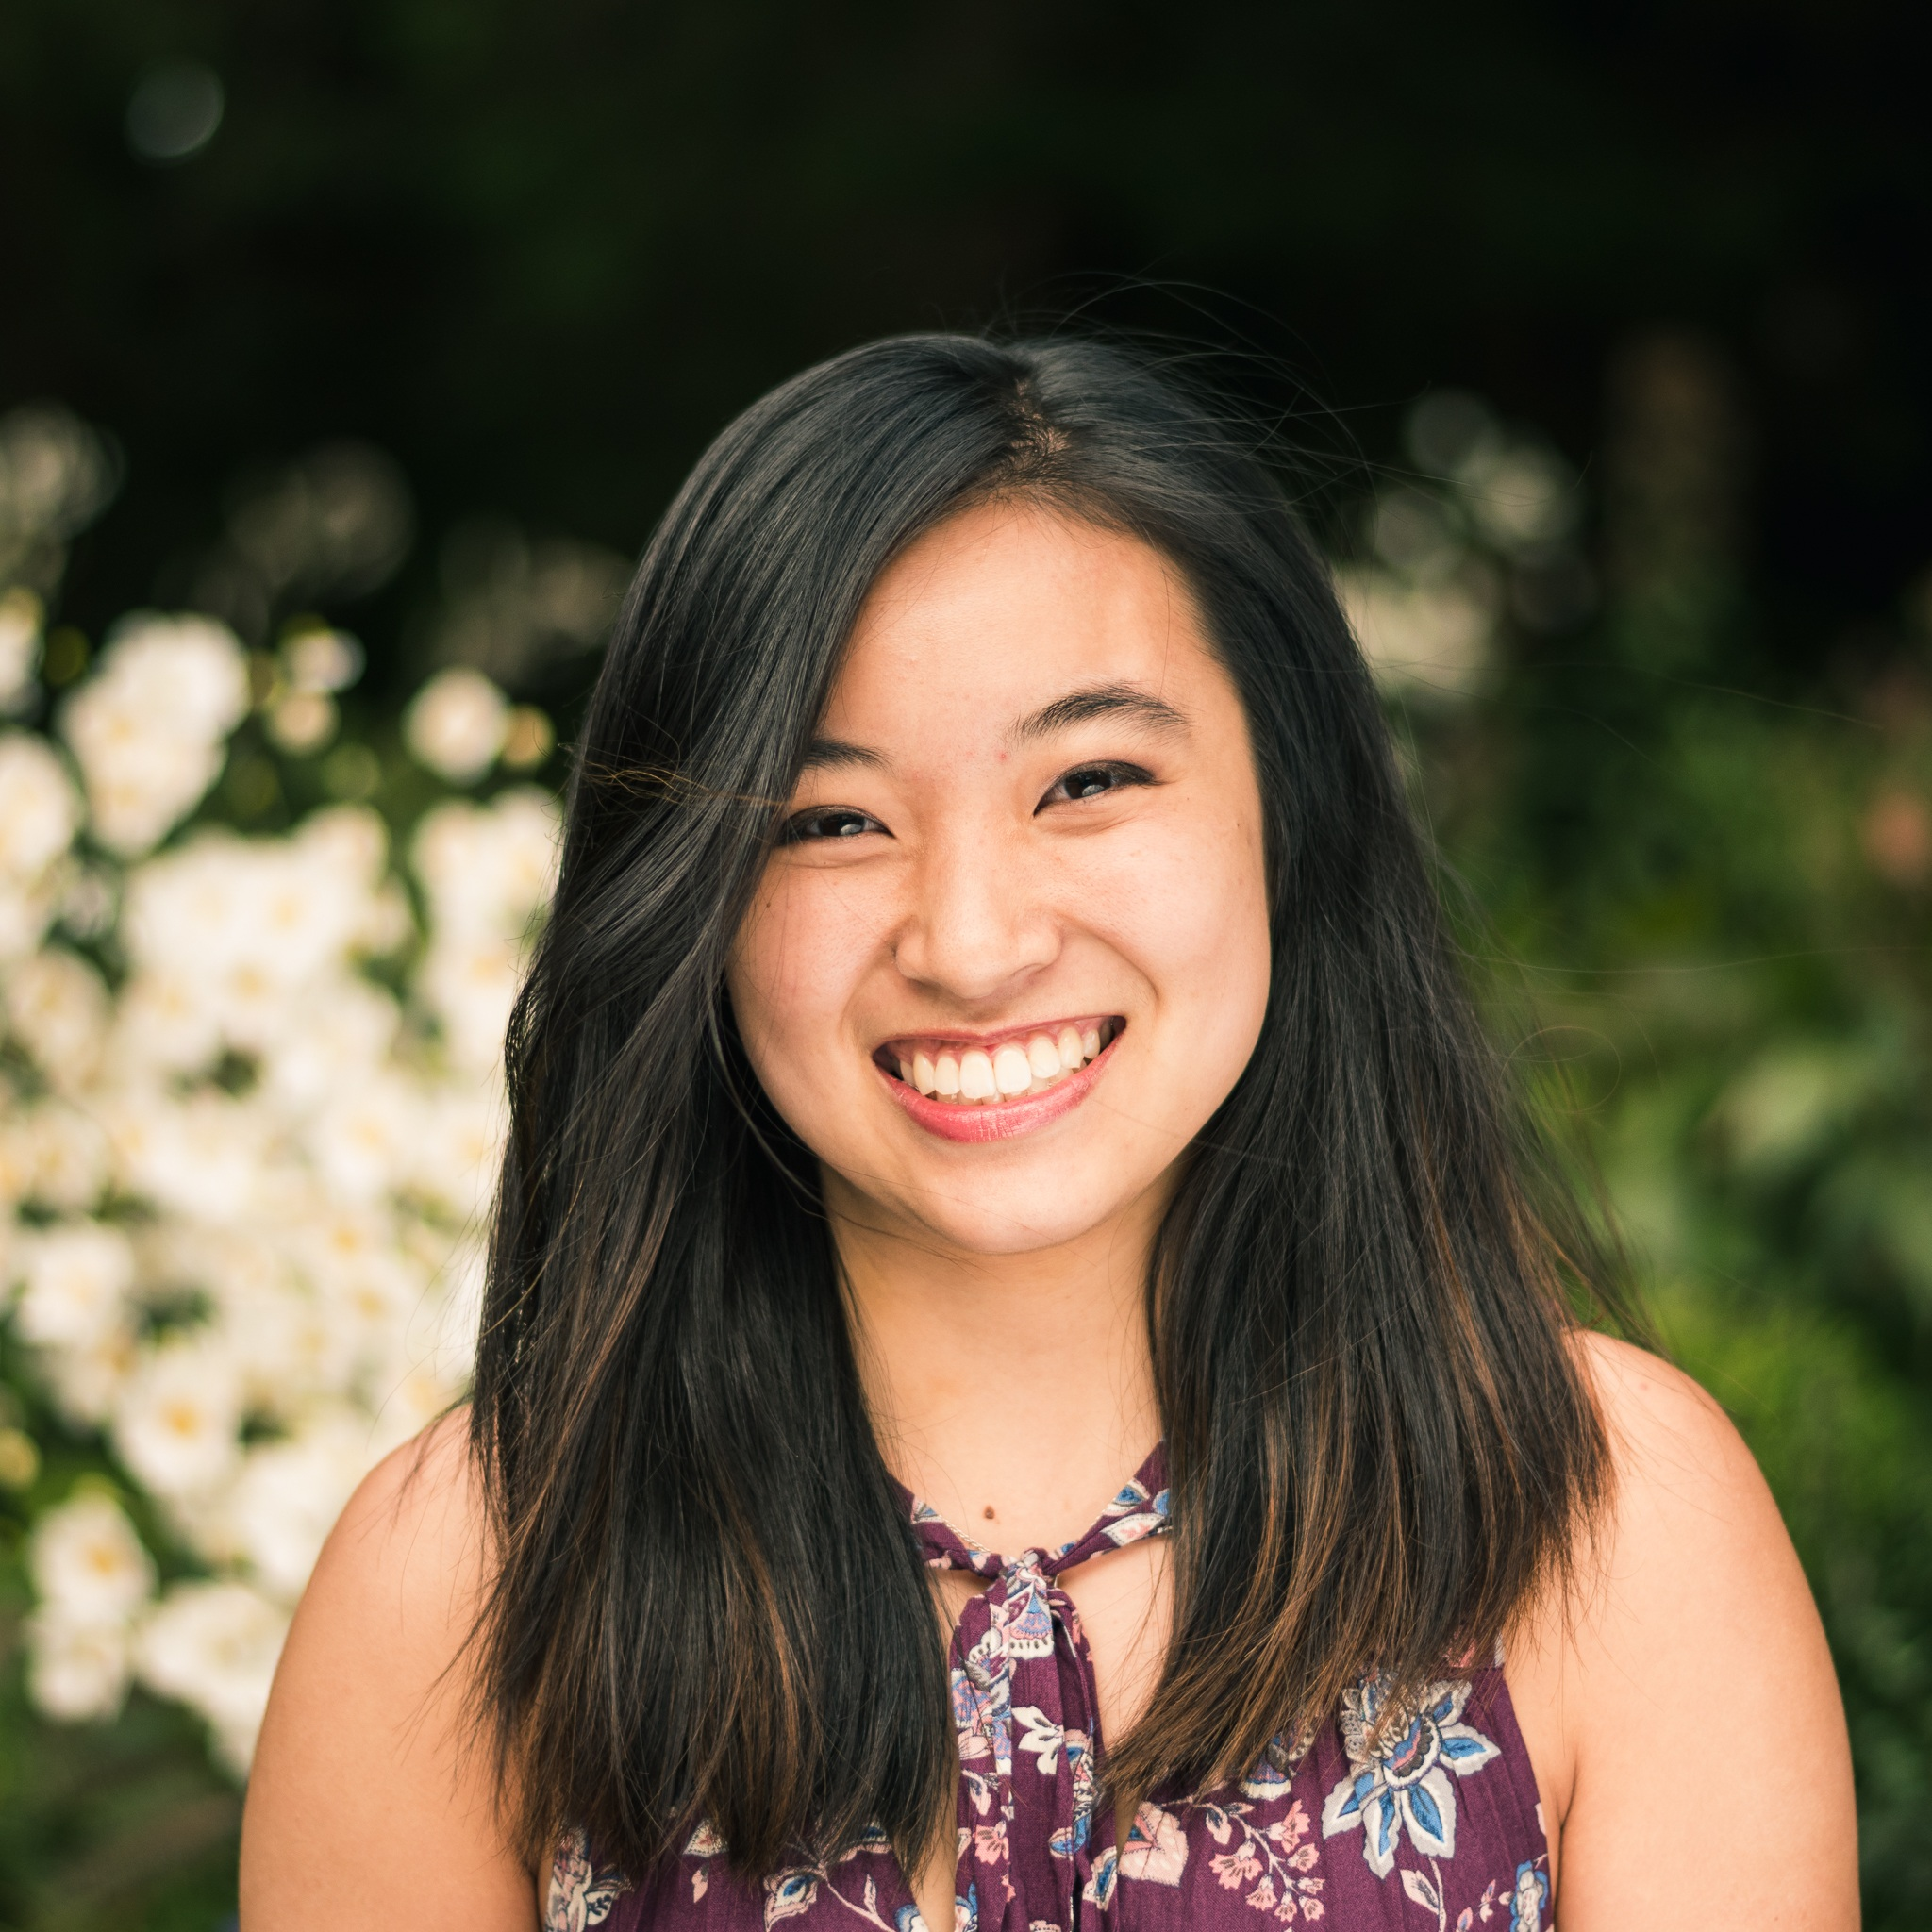 Amanda Cheng '20    Amanda Cheng is from Mendham, New Jersey and contributes to the typical PPE profile of an engineer (MAE!) from Forbes. She is in love with pink, boots, physics, elephants, peaches and the universe (but they're indifferent and she sadly never eats peaches). She also loves birdwatching and a good story.